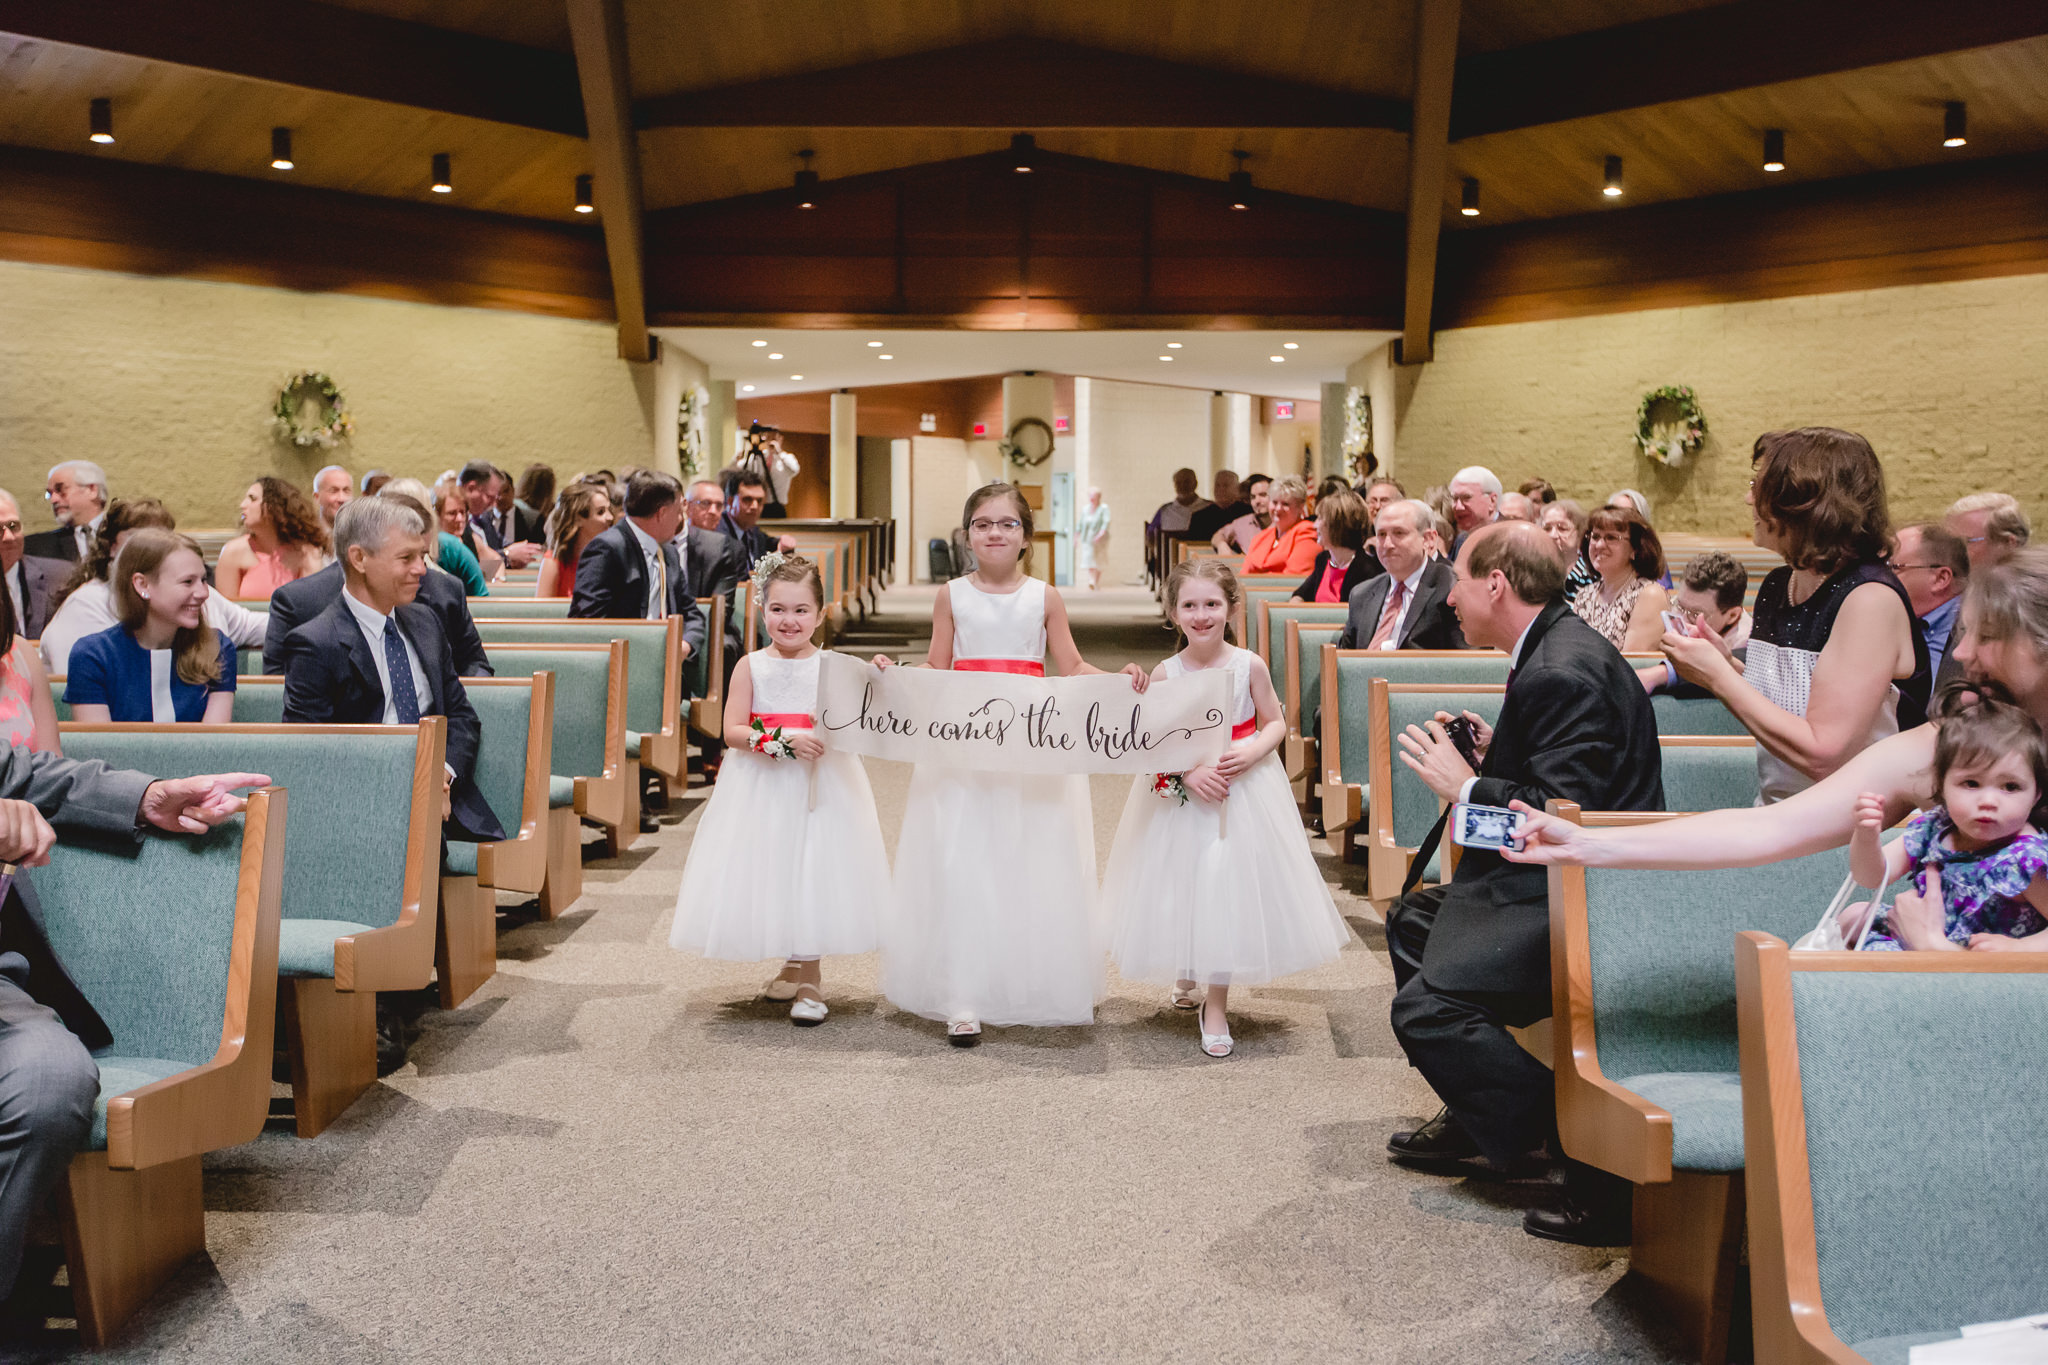 Flower girls during ceremony at St. John Neumann Church in Pittsburgh PA